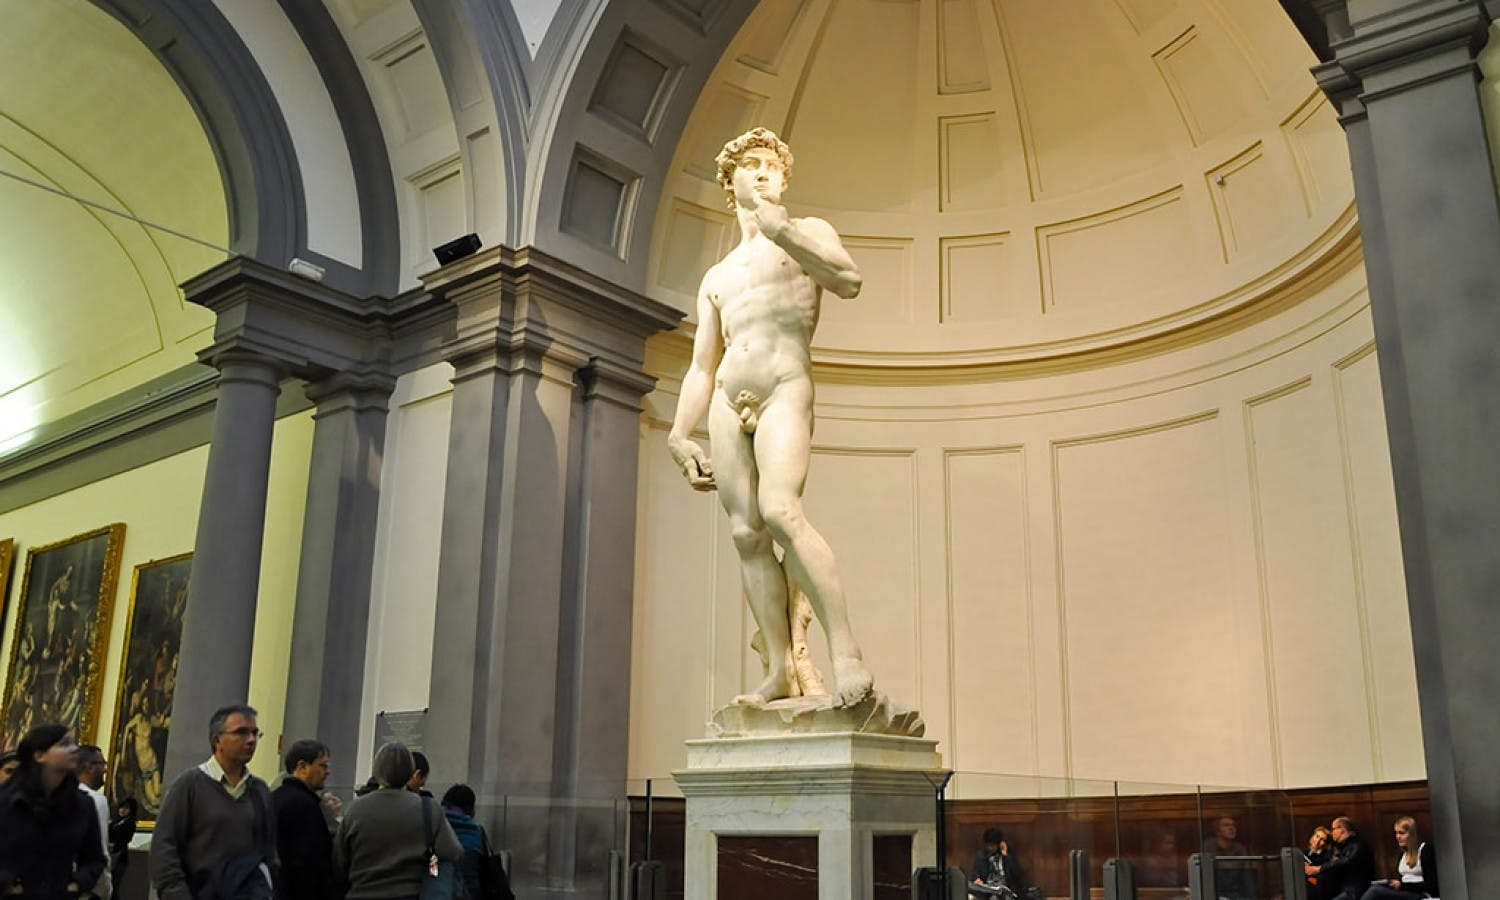 Accademia Gallery: Skip the Line Tickets and Guided Visit